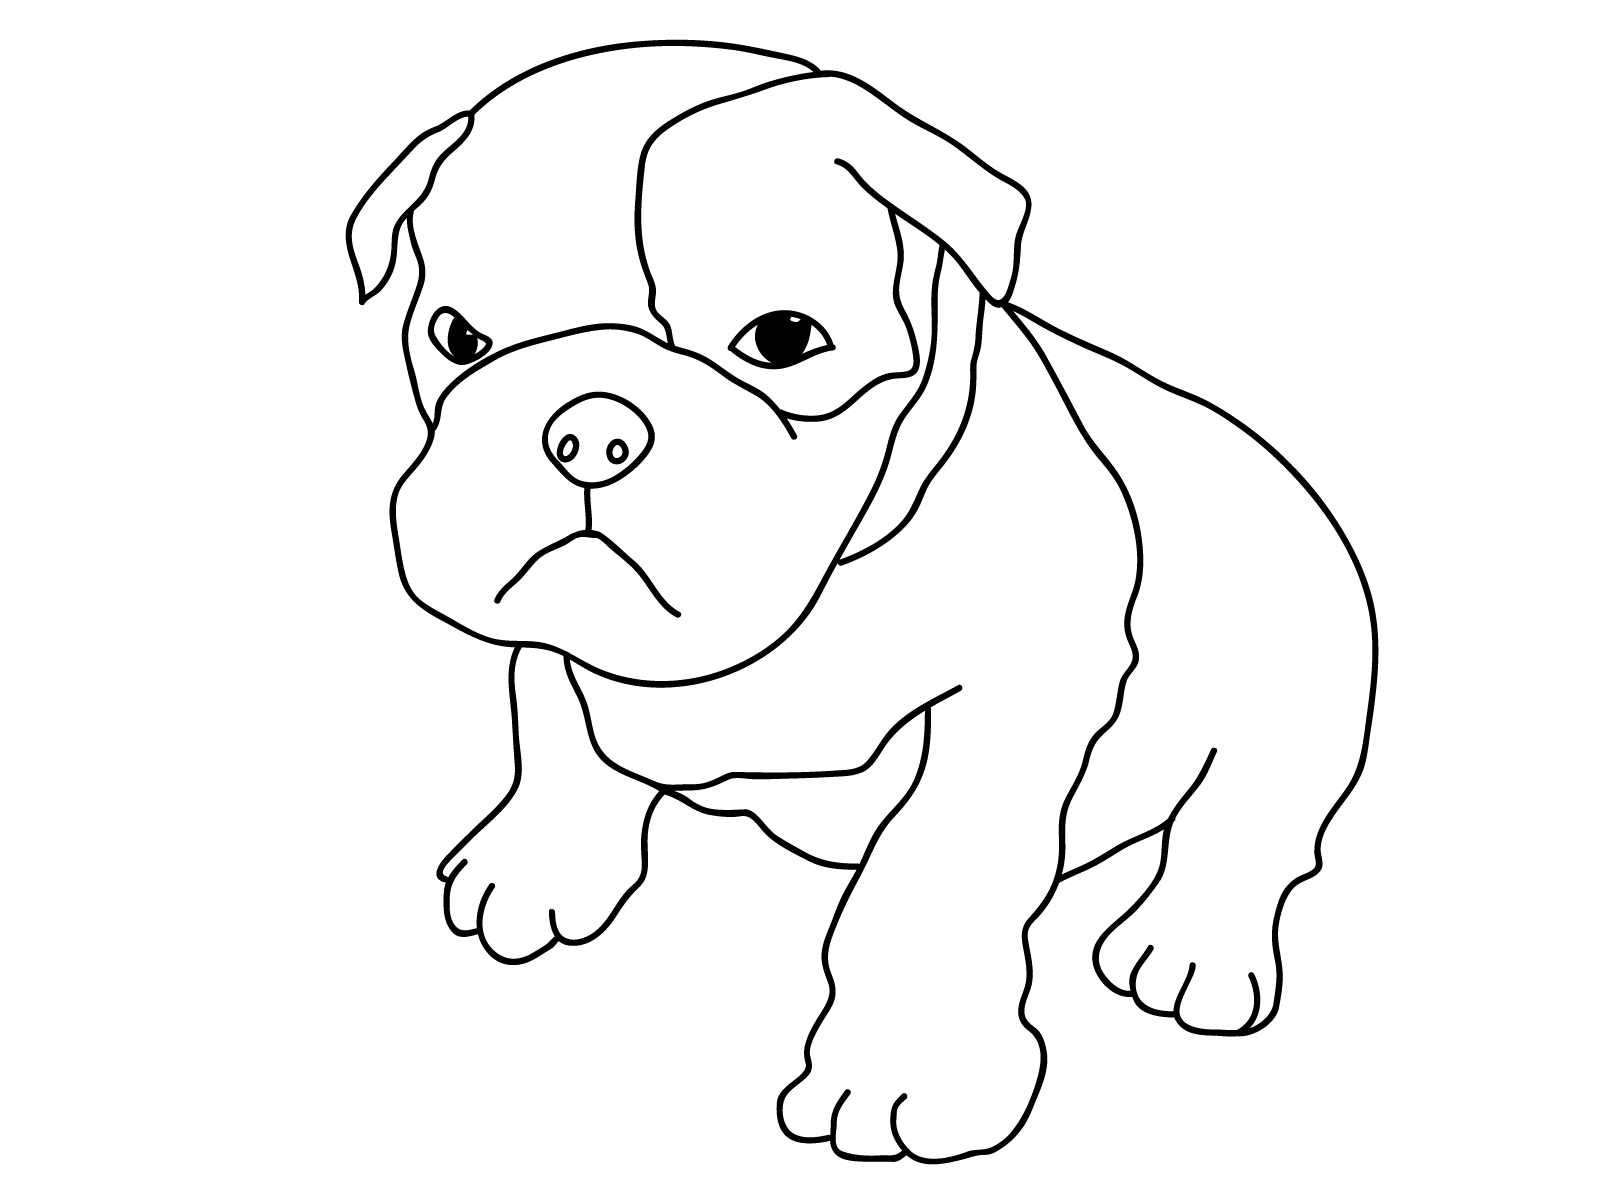 dog coloring pictures printable employ dog coloring pages for your childrens creative time coloring dog printable pictures